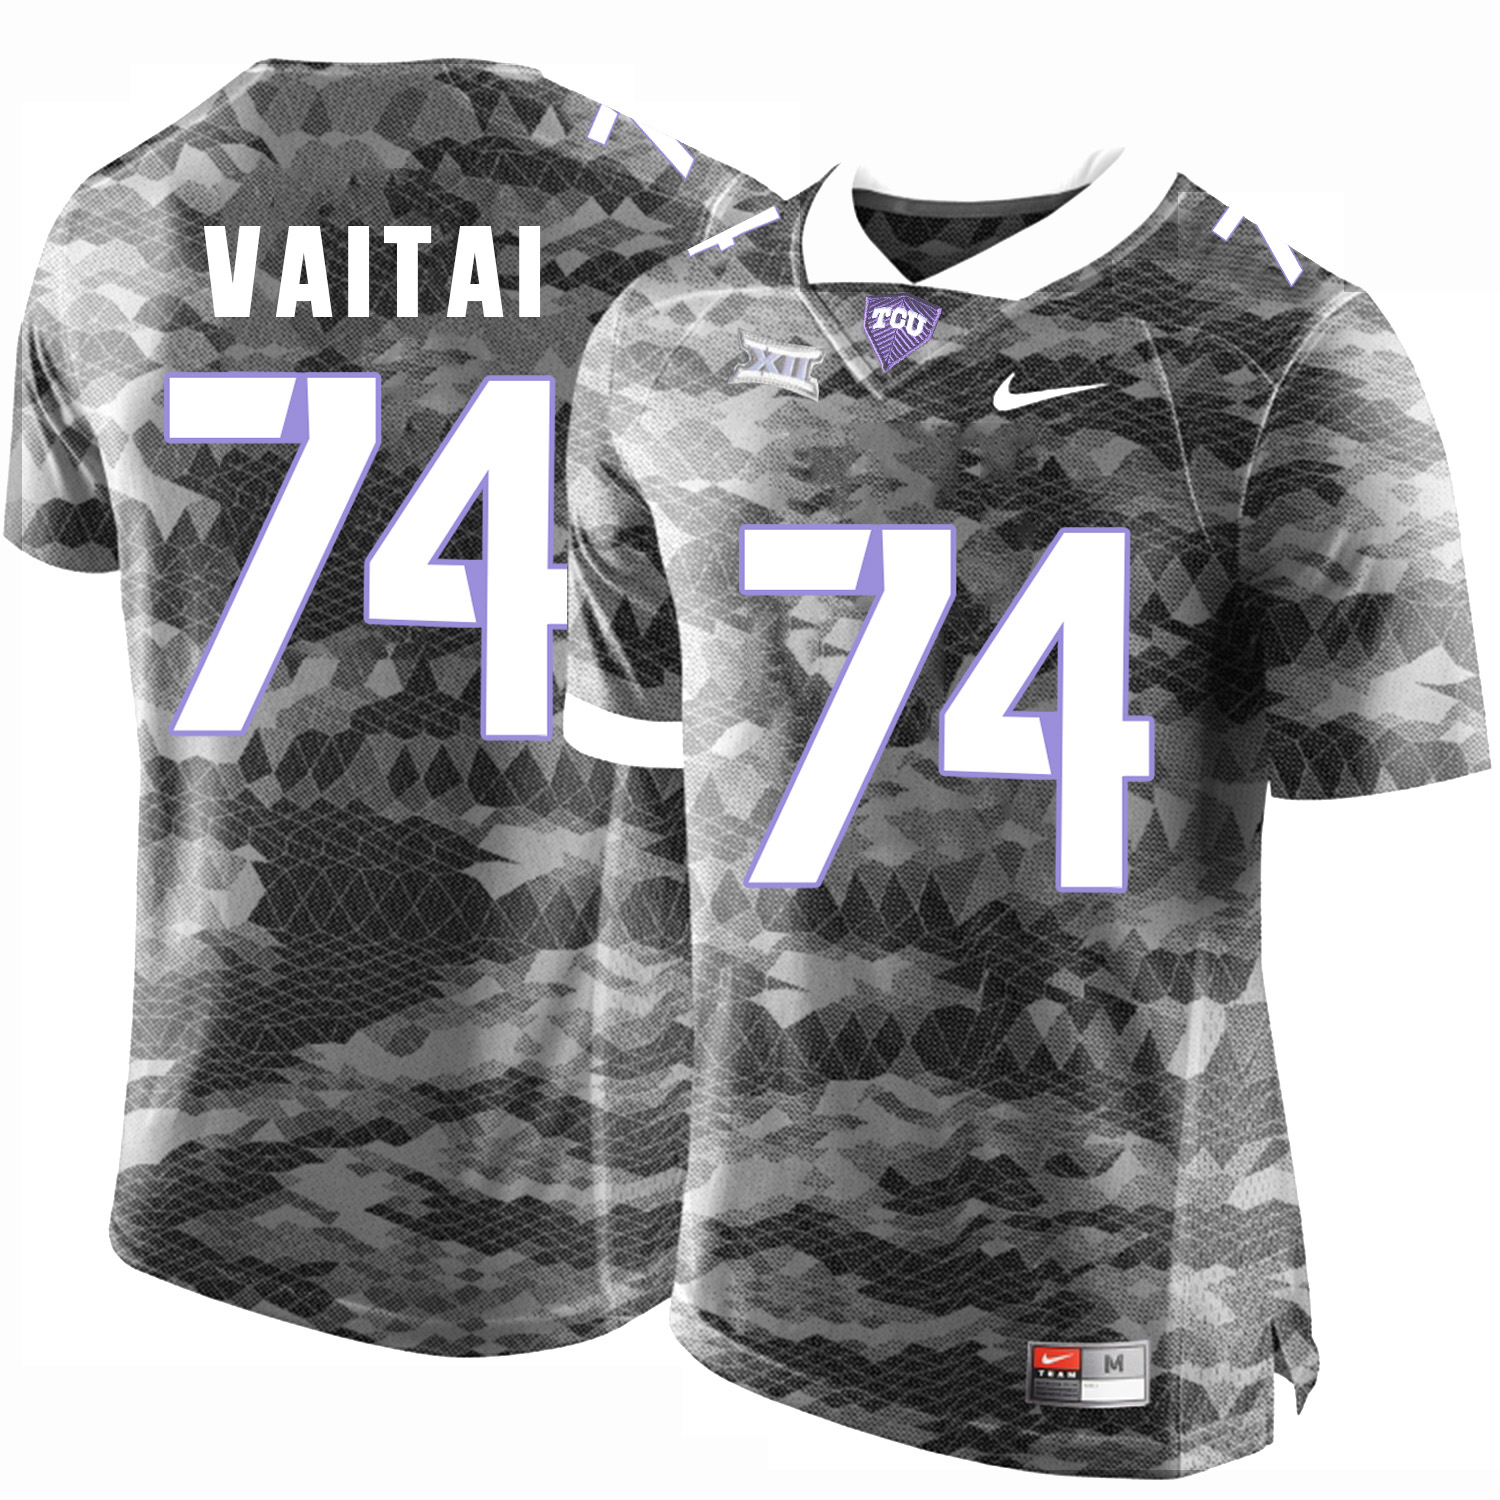 TCU Horned Frogs 74 Halapoulivaati Vaitai Gray College Football Limited Jersey